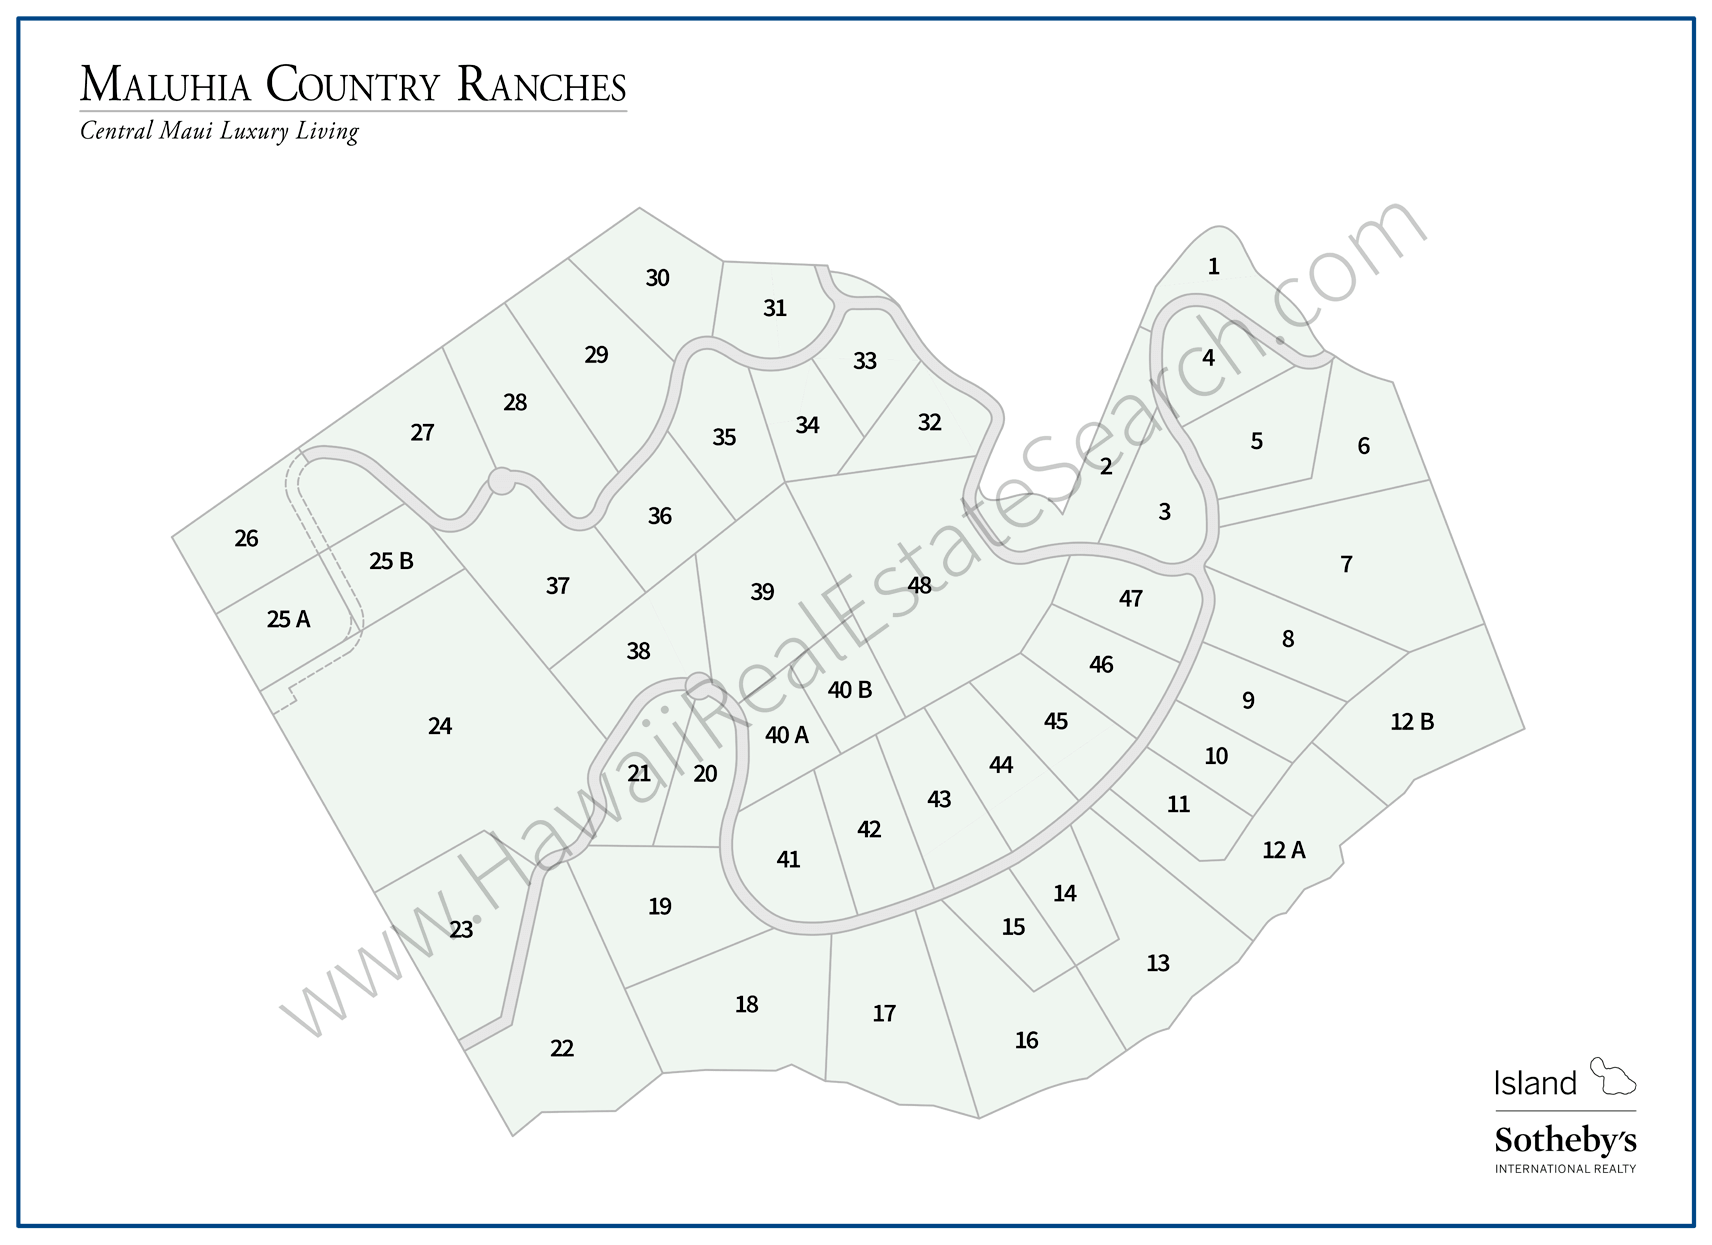 Maluhia Country Ranches Map